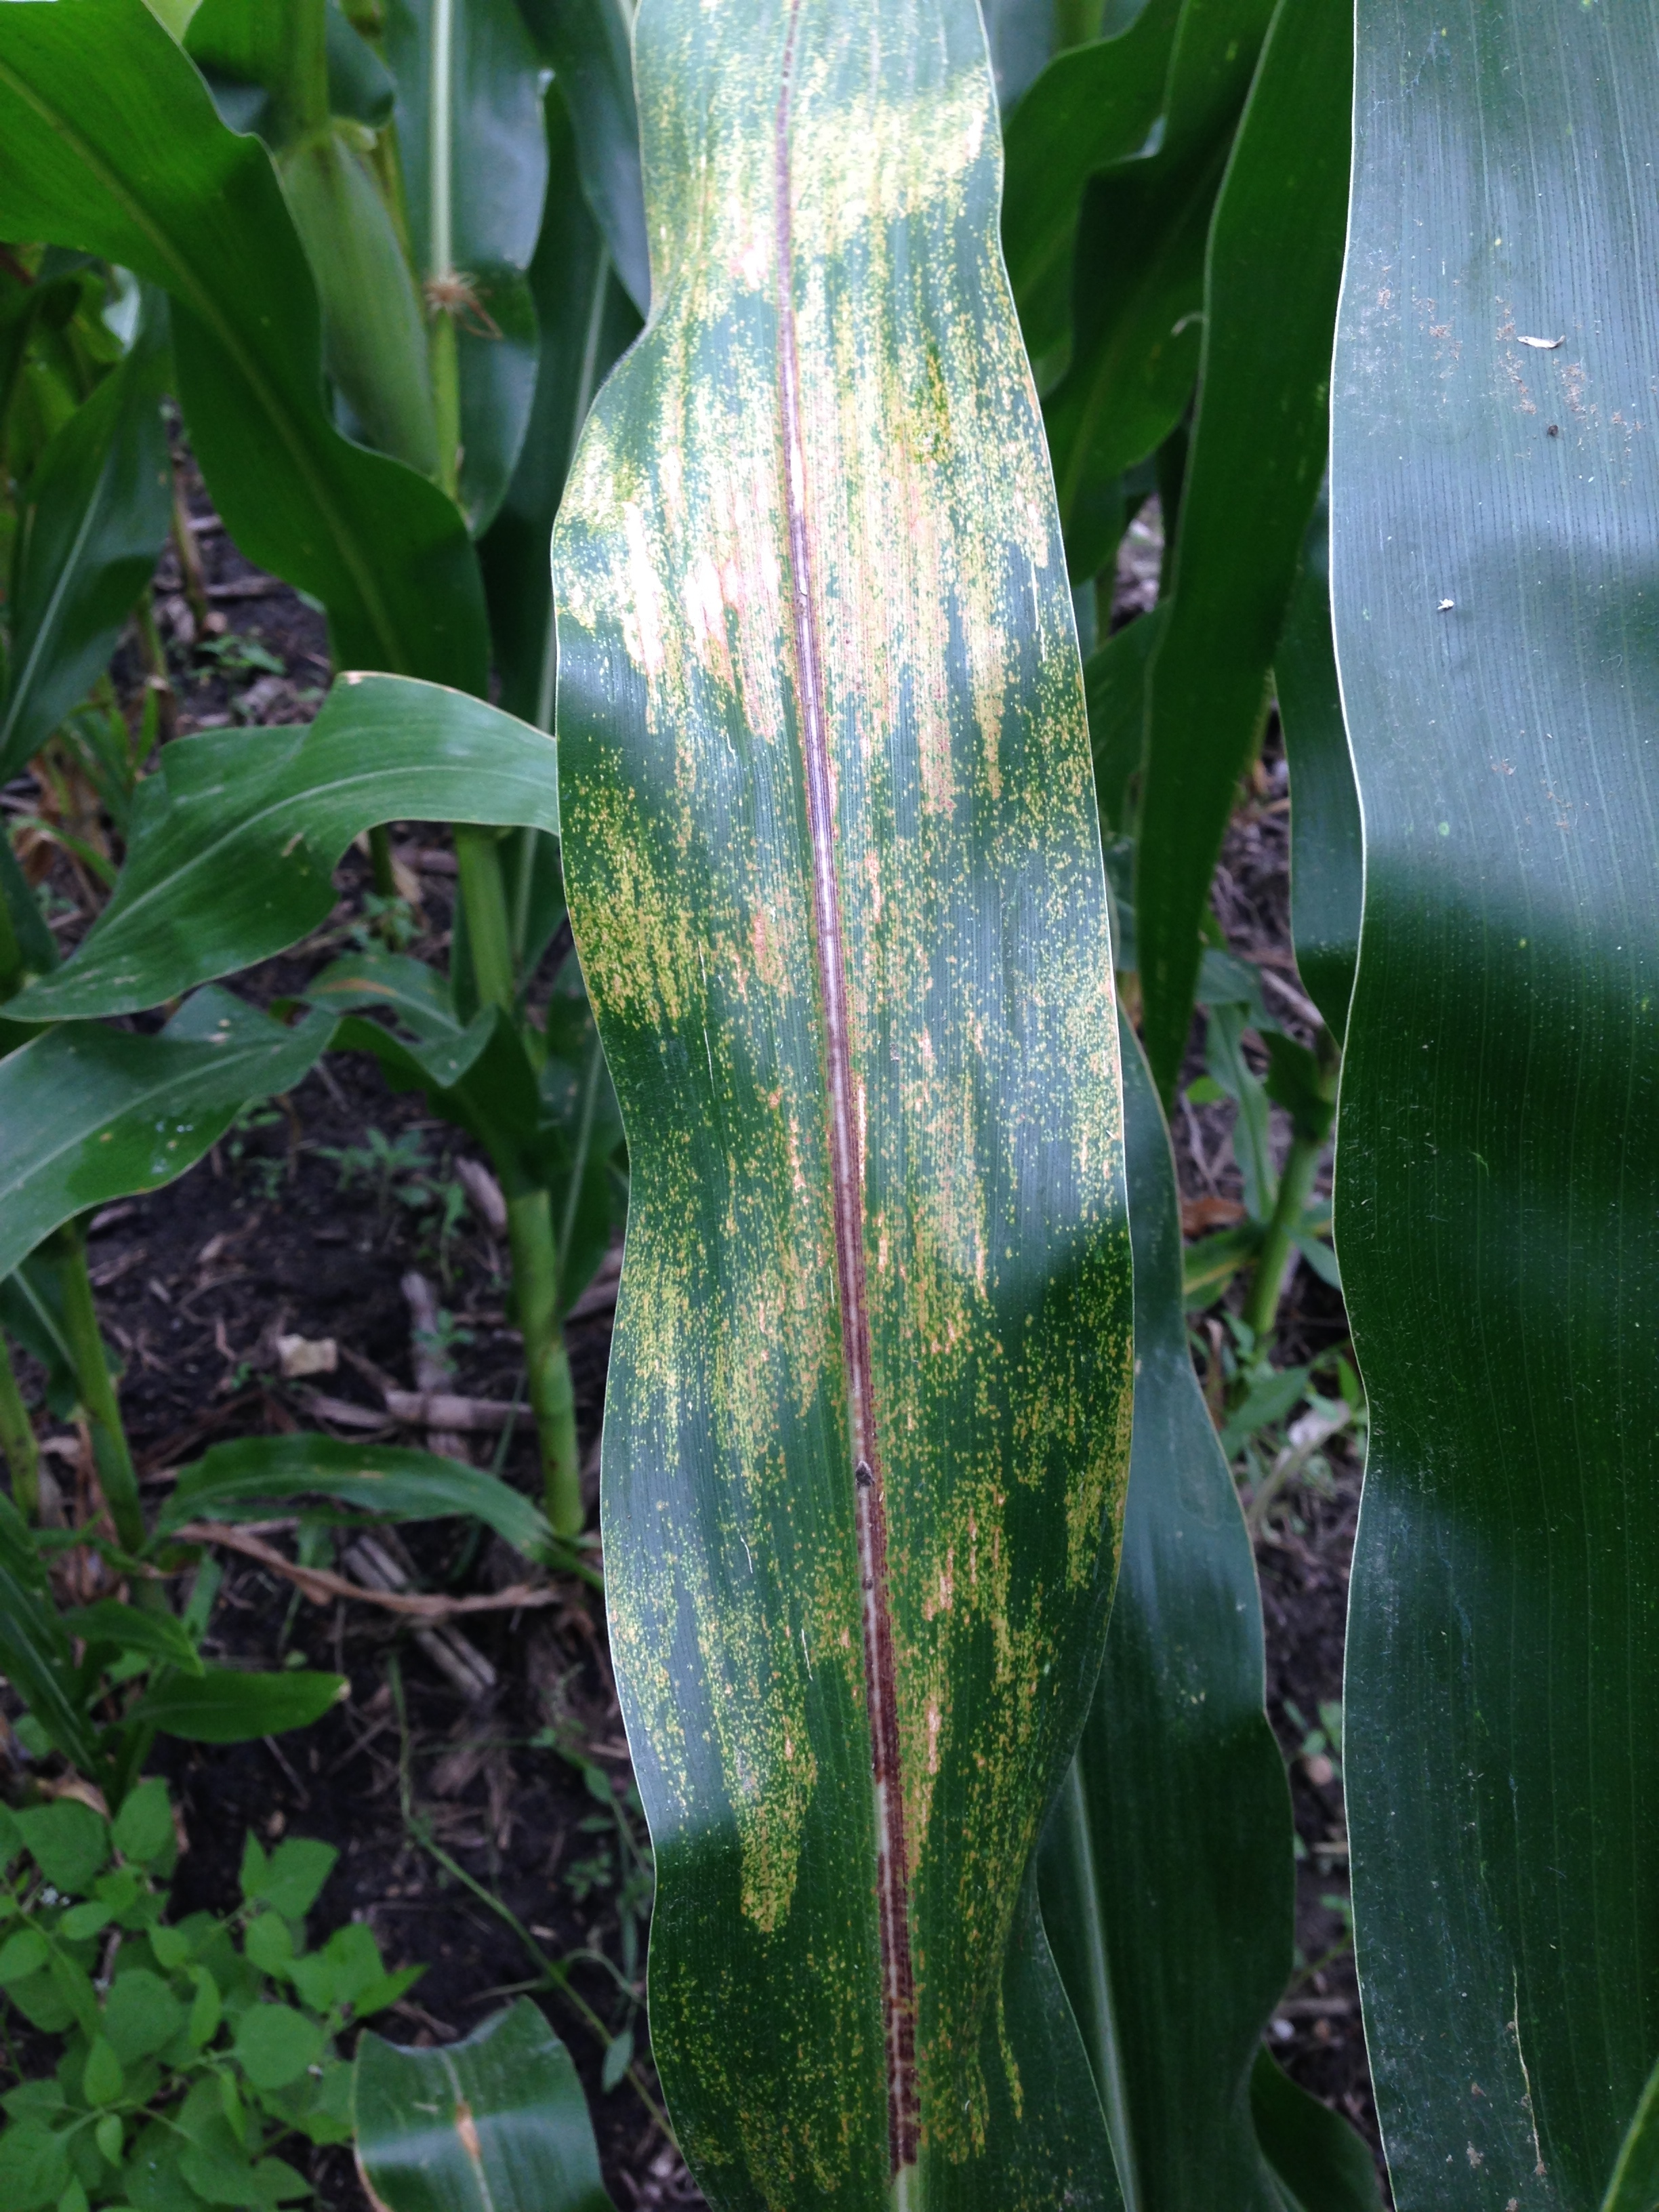 Physoderma brown spot lesions appearing in 'bands' across the leaf surface.